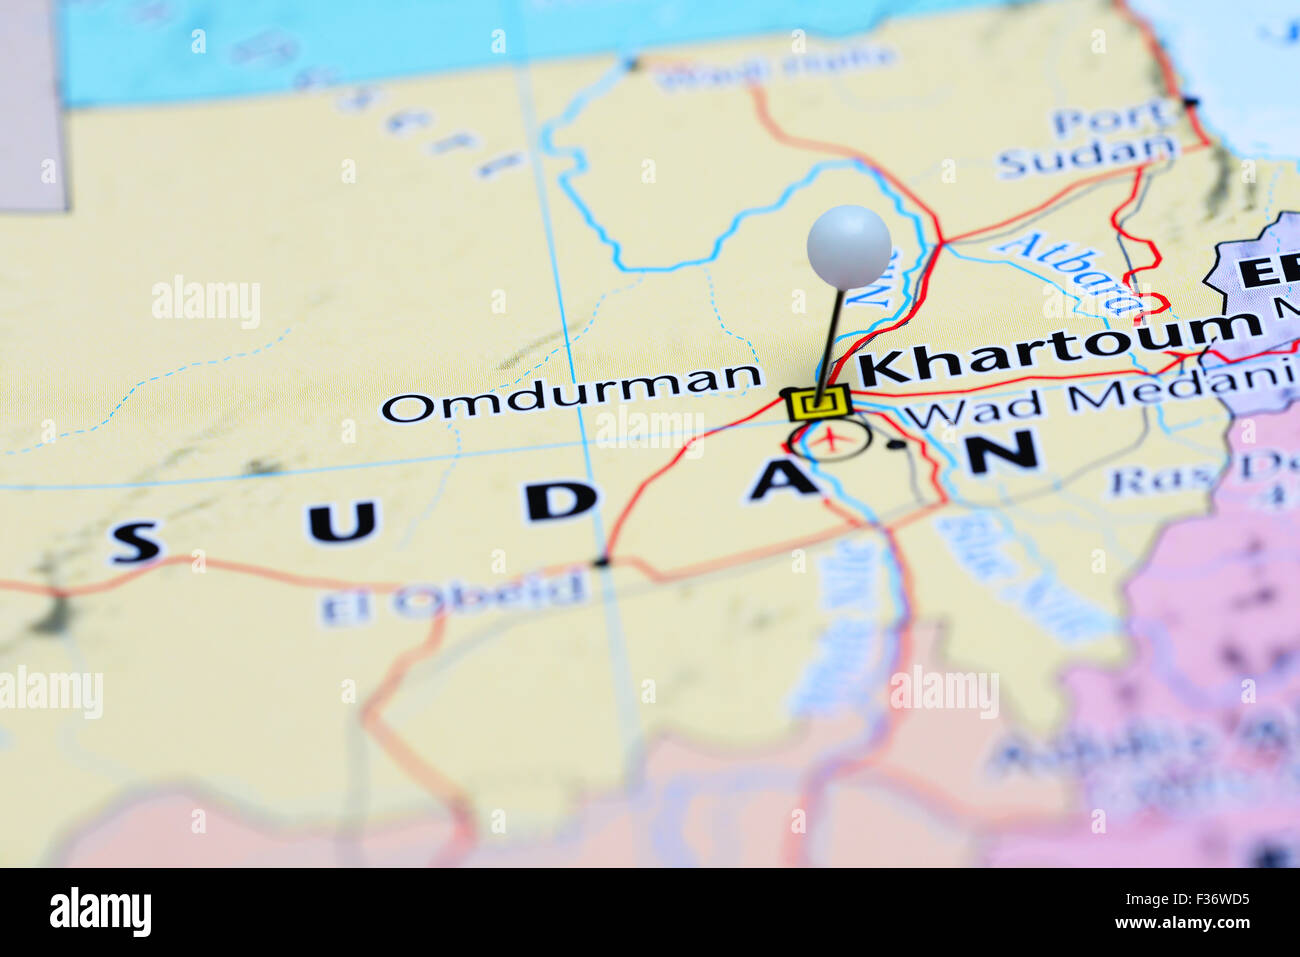 Khartoum Pinned On A Map Of Asia Stock Photo 88047489 Alamy